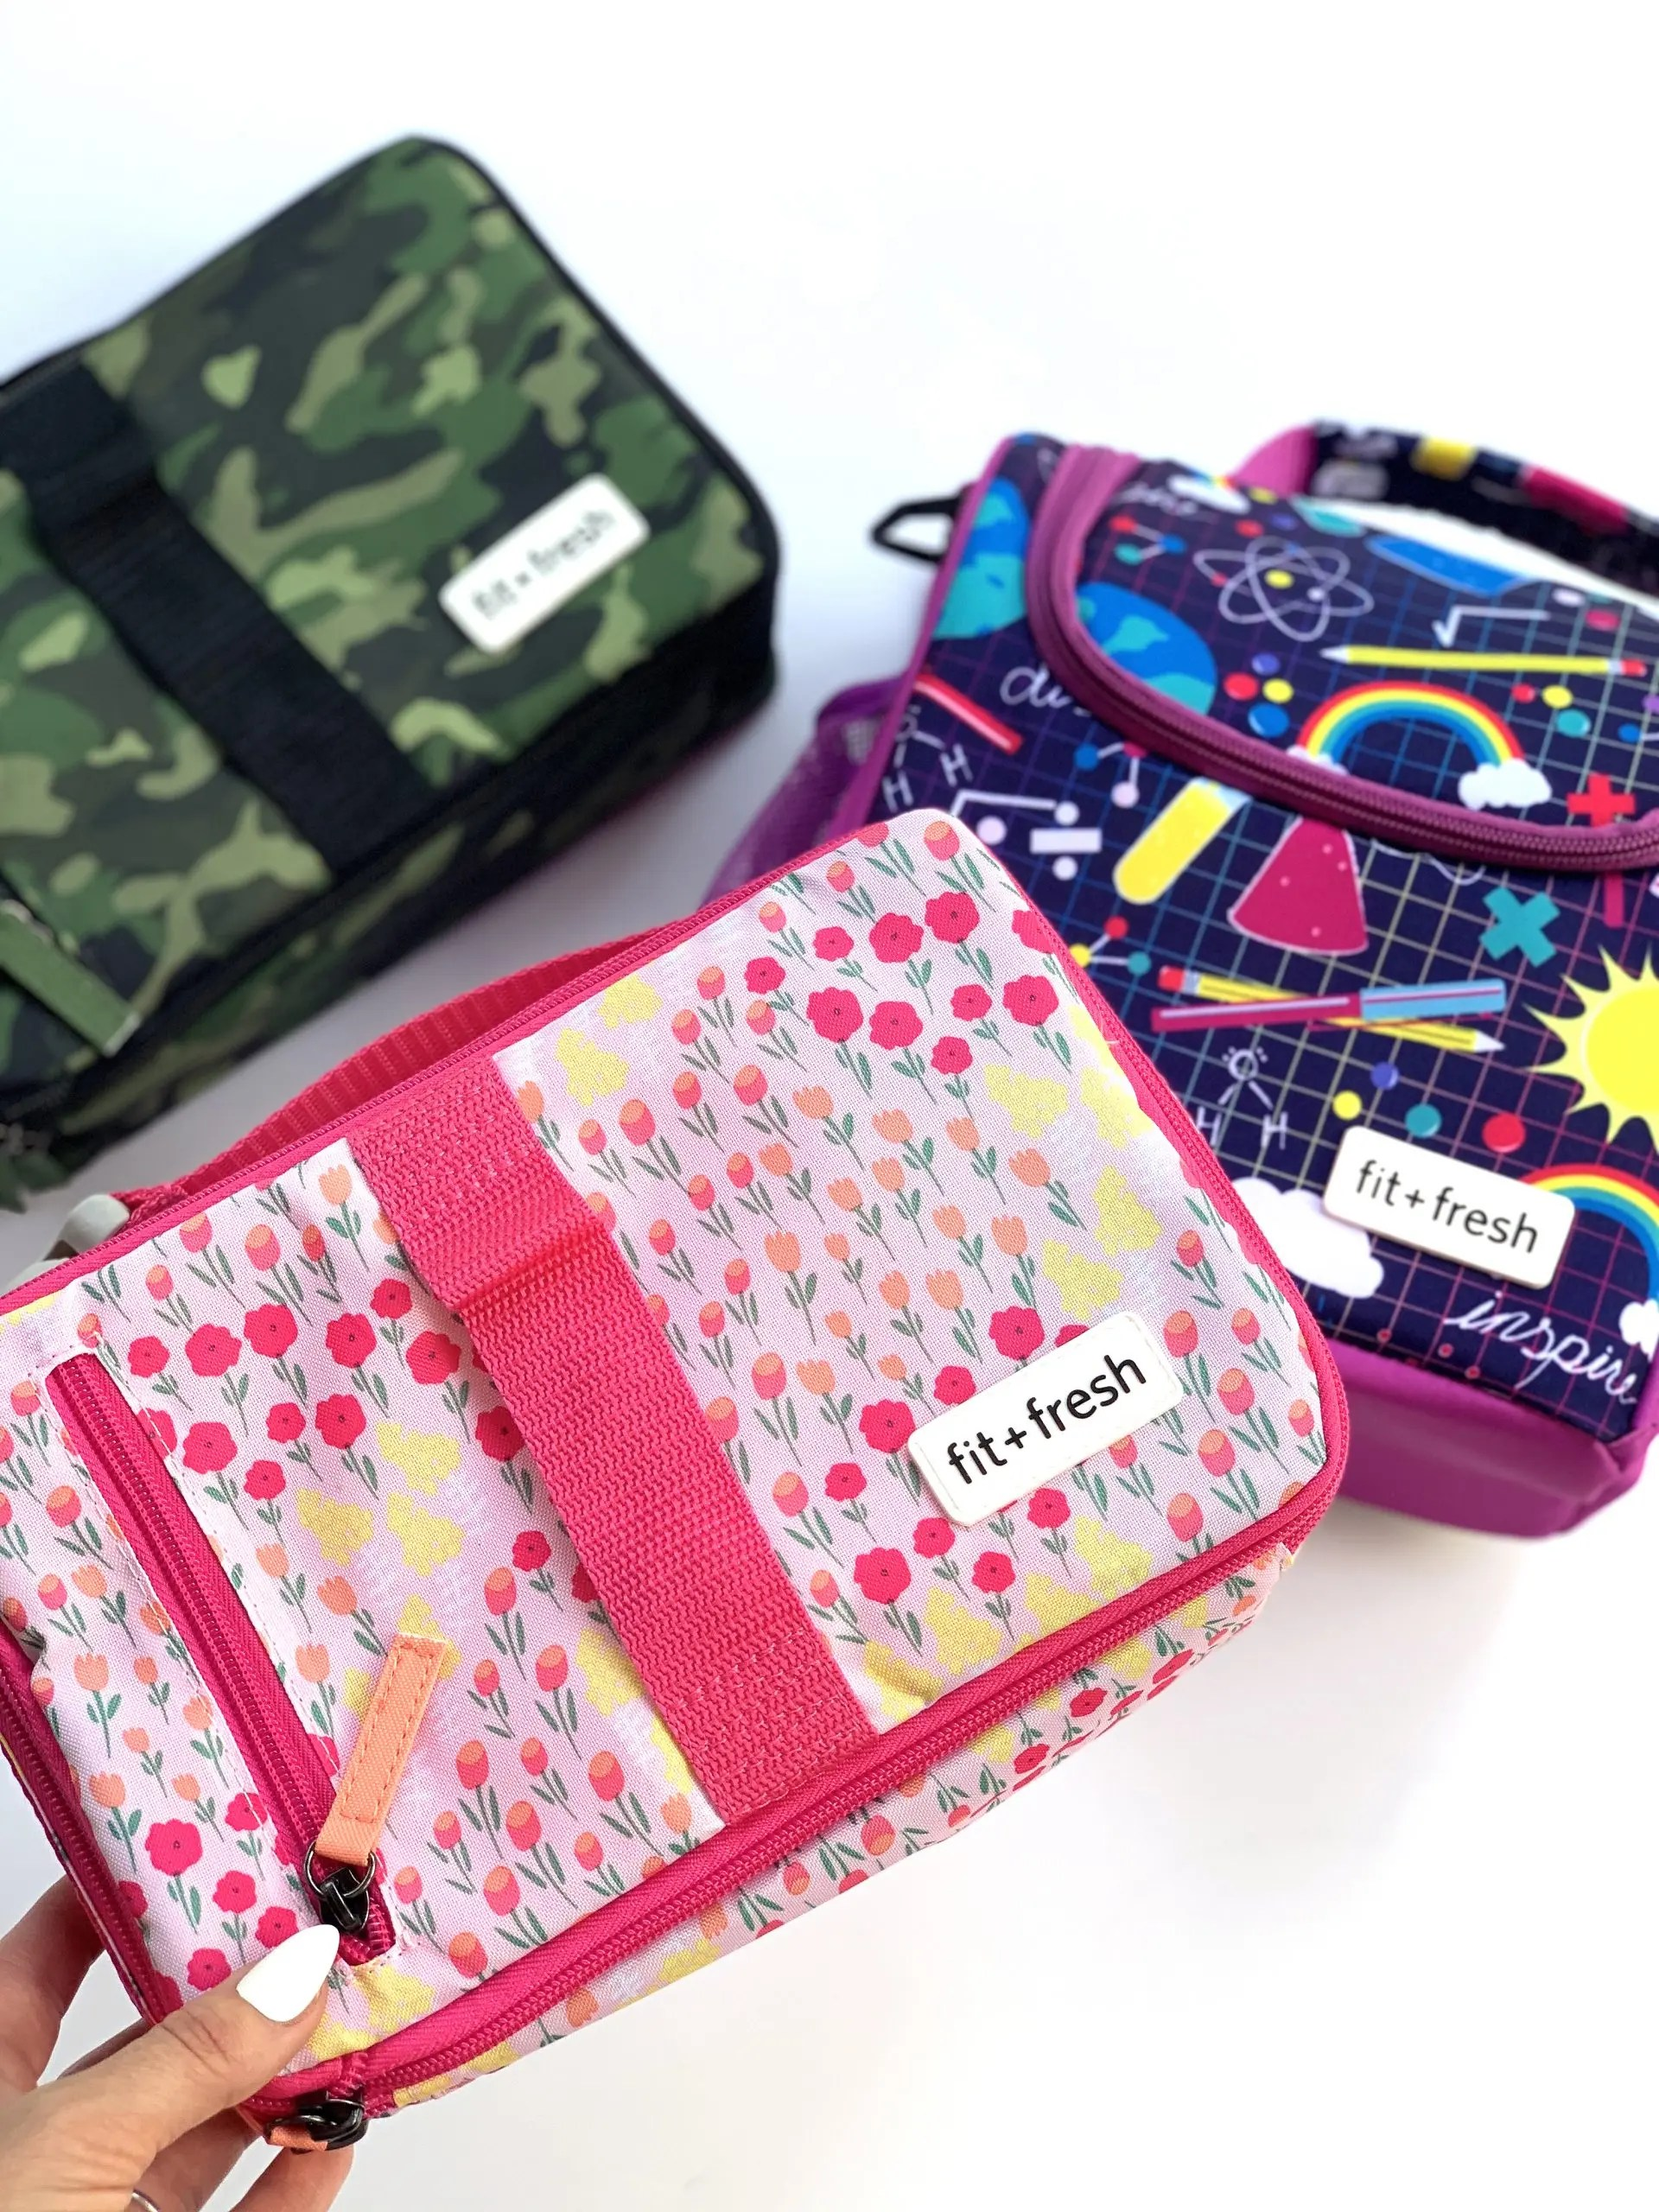 fit + Fresh kids lunch bags with bento box